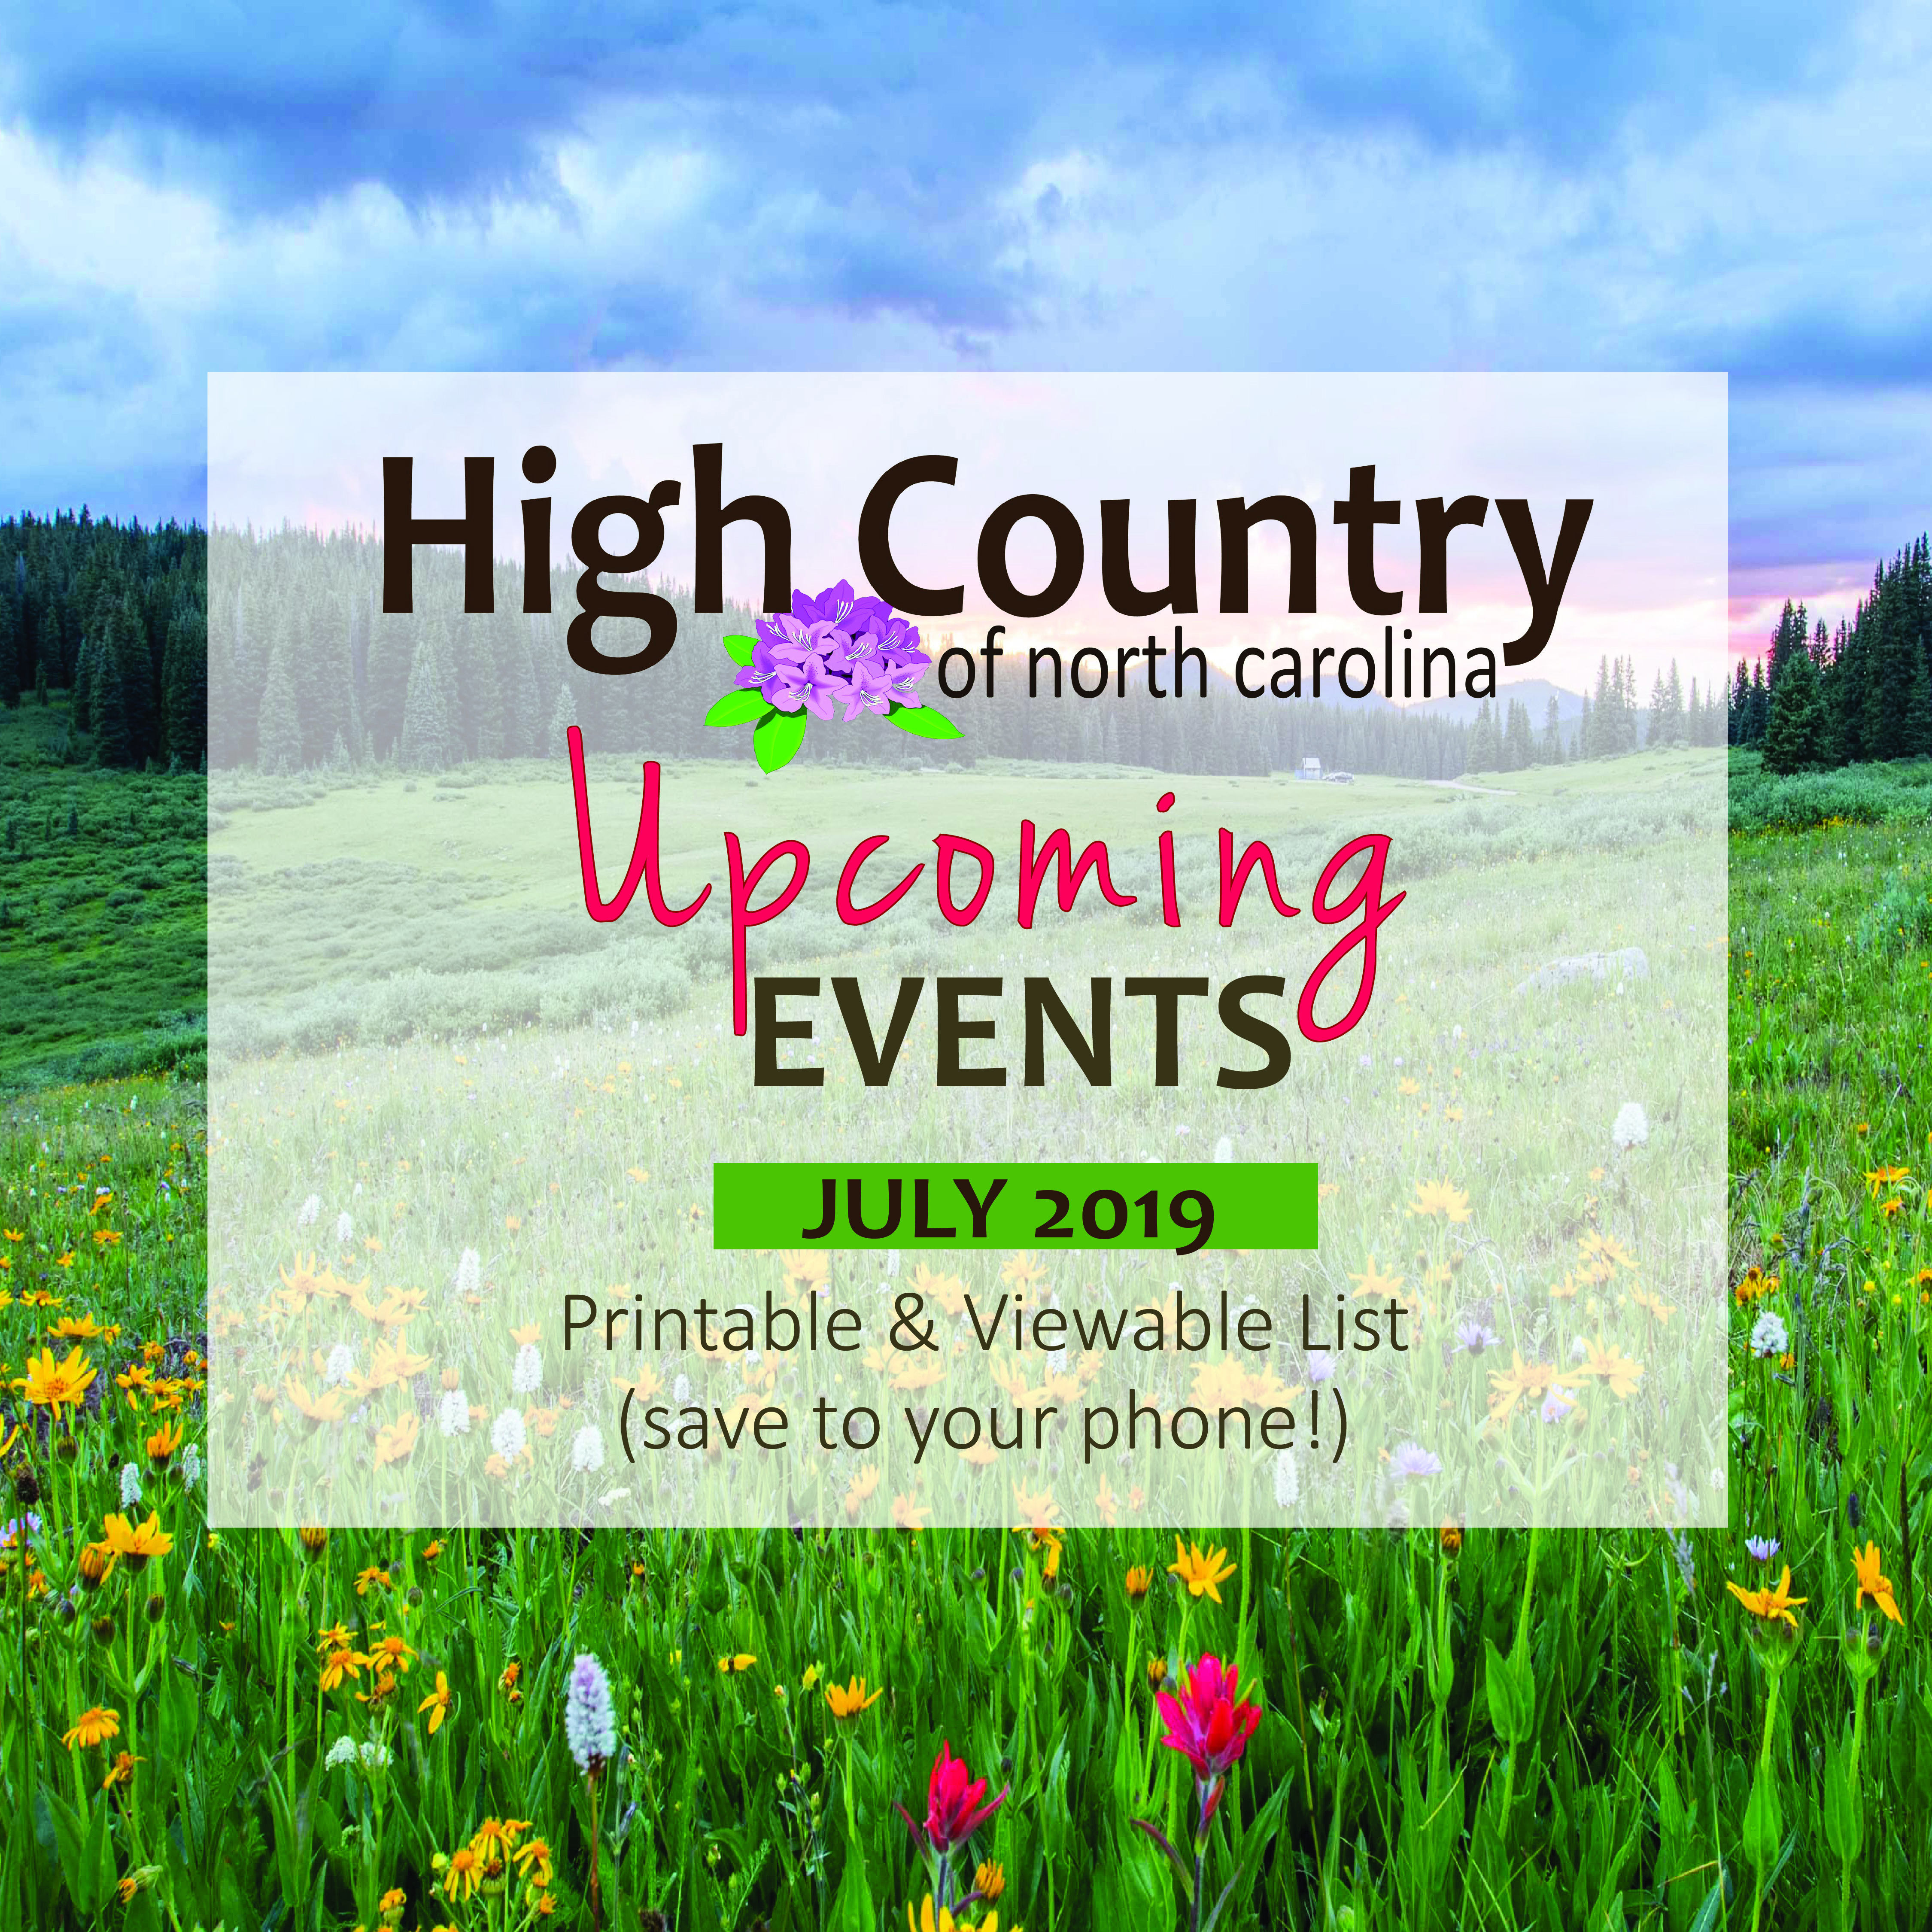 High Country Events Calendar July 2019